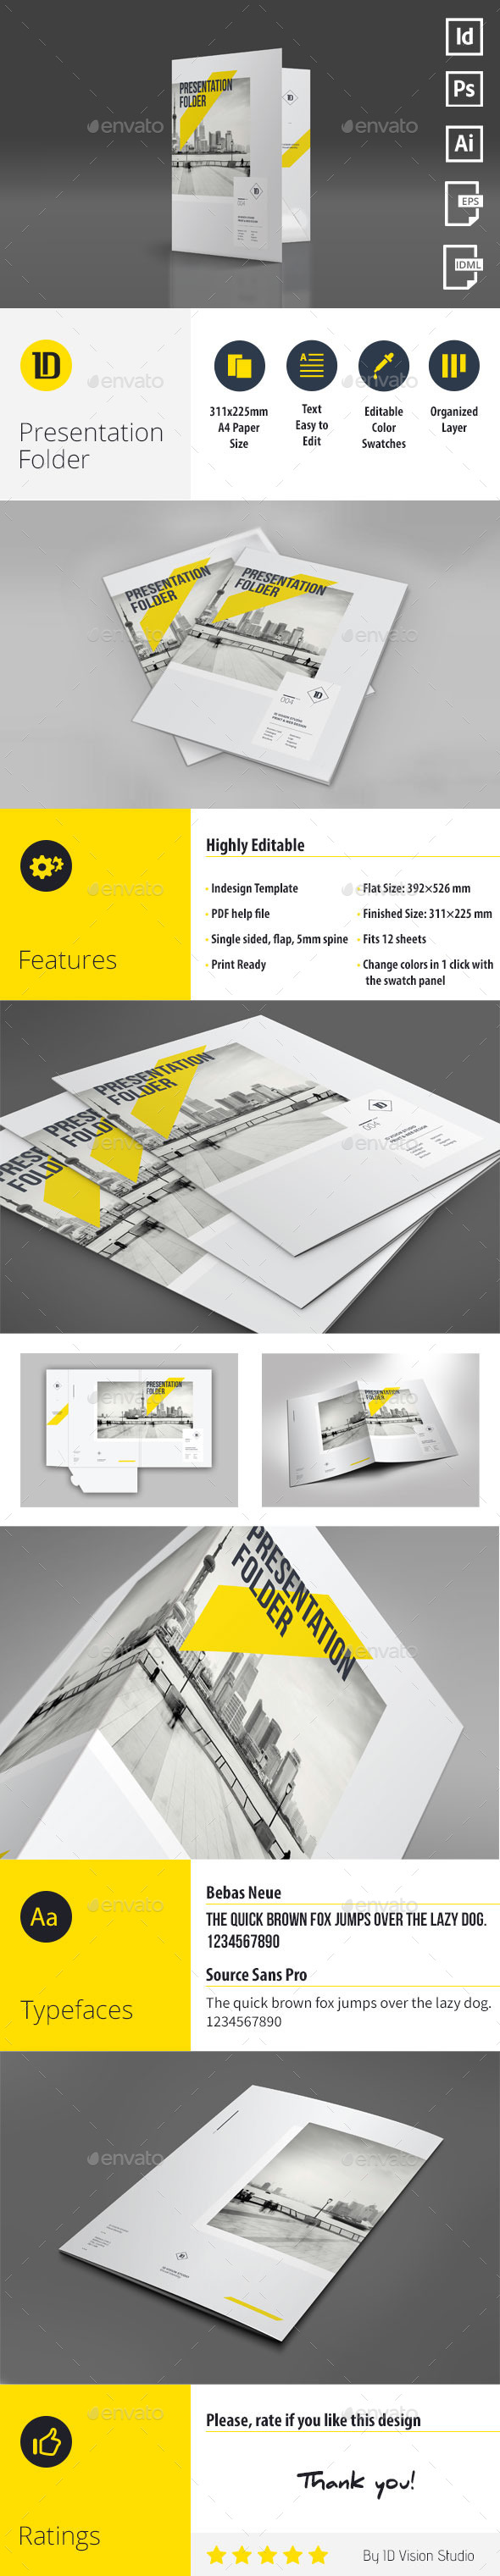 GraphicRiver A4 Multipurpose Presentation Folder 004 11373052